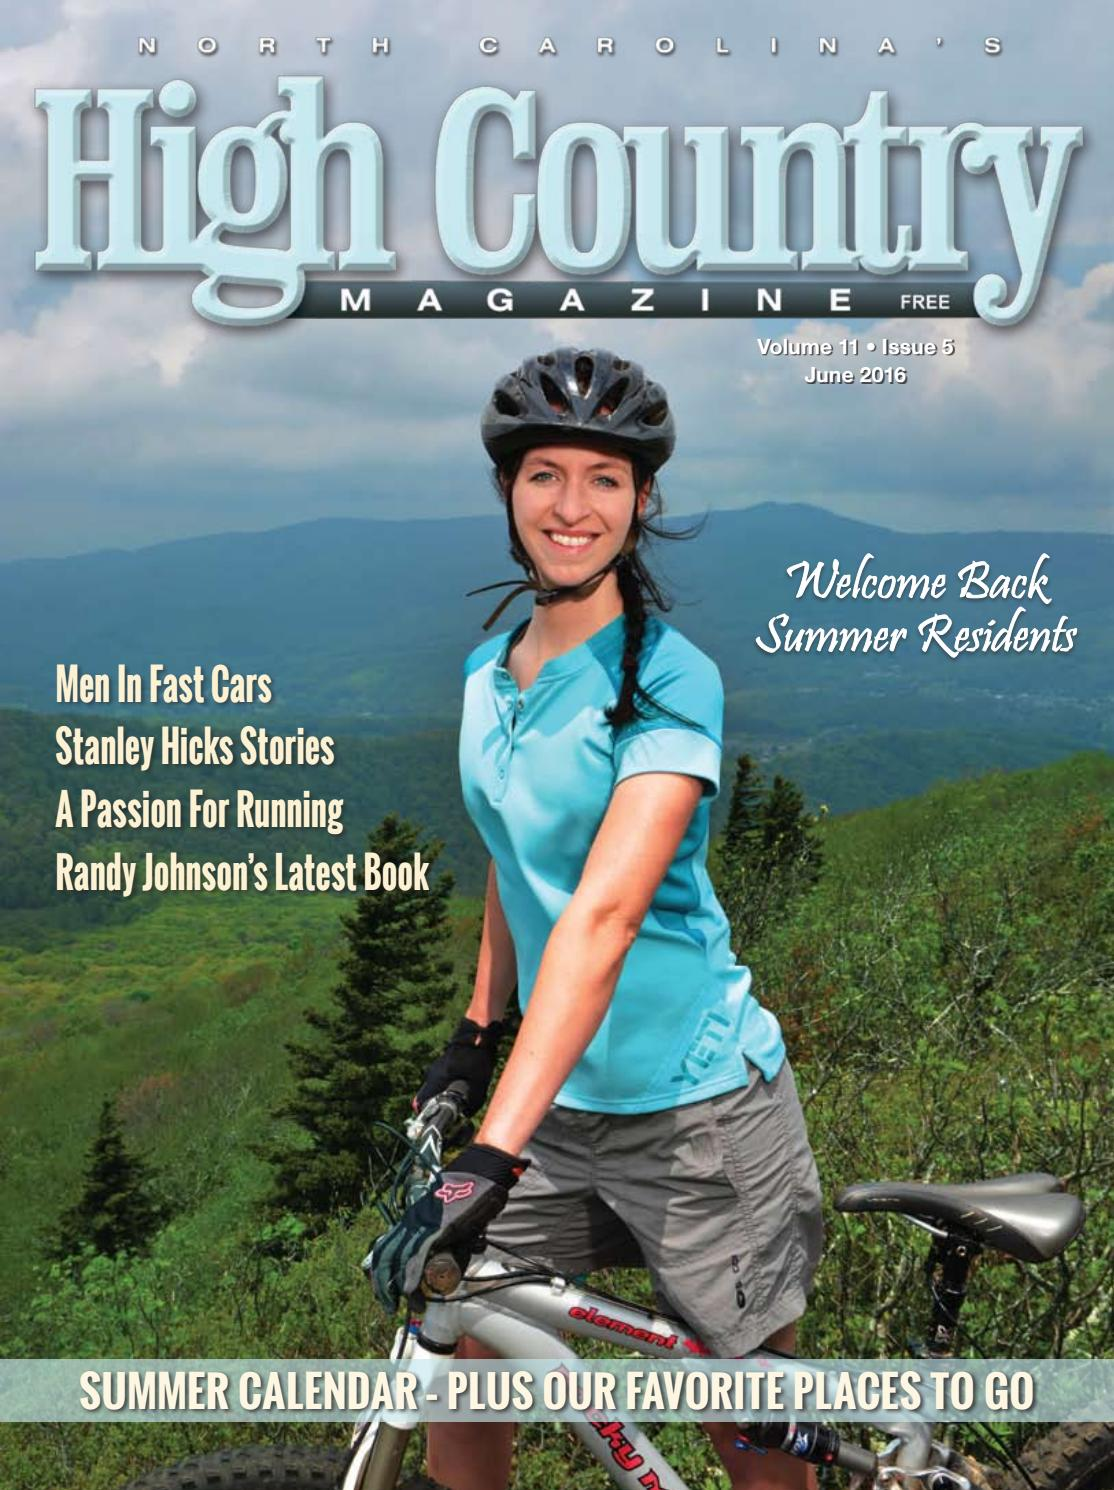 High Country Magazine June 2016 By Press Issuu Eiger New Sweat Confident 02 Black K65917